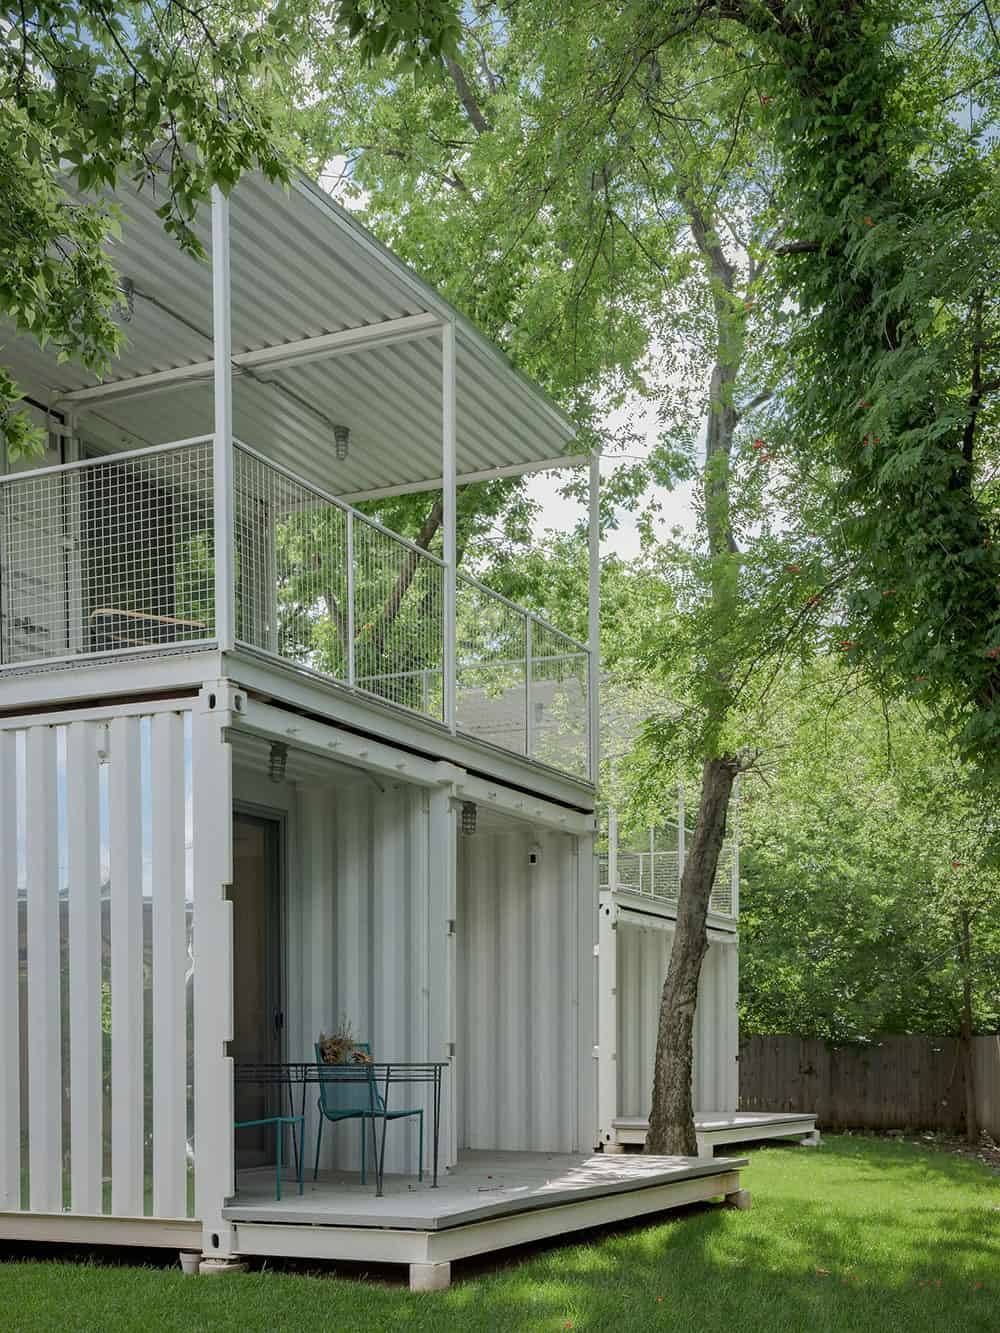 Container home units